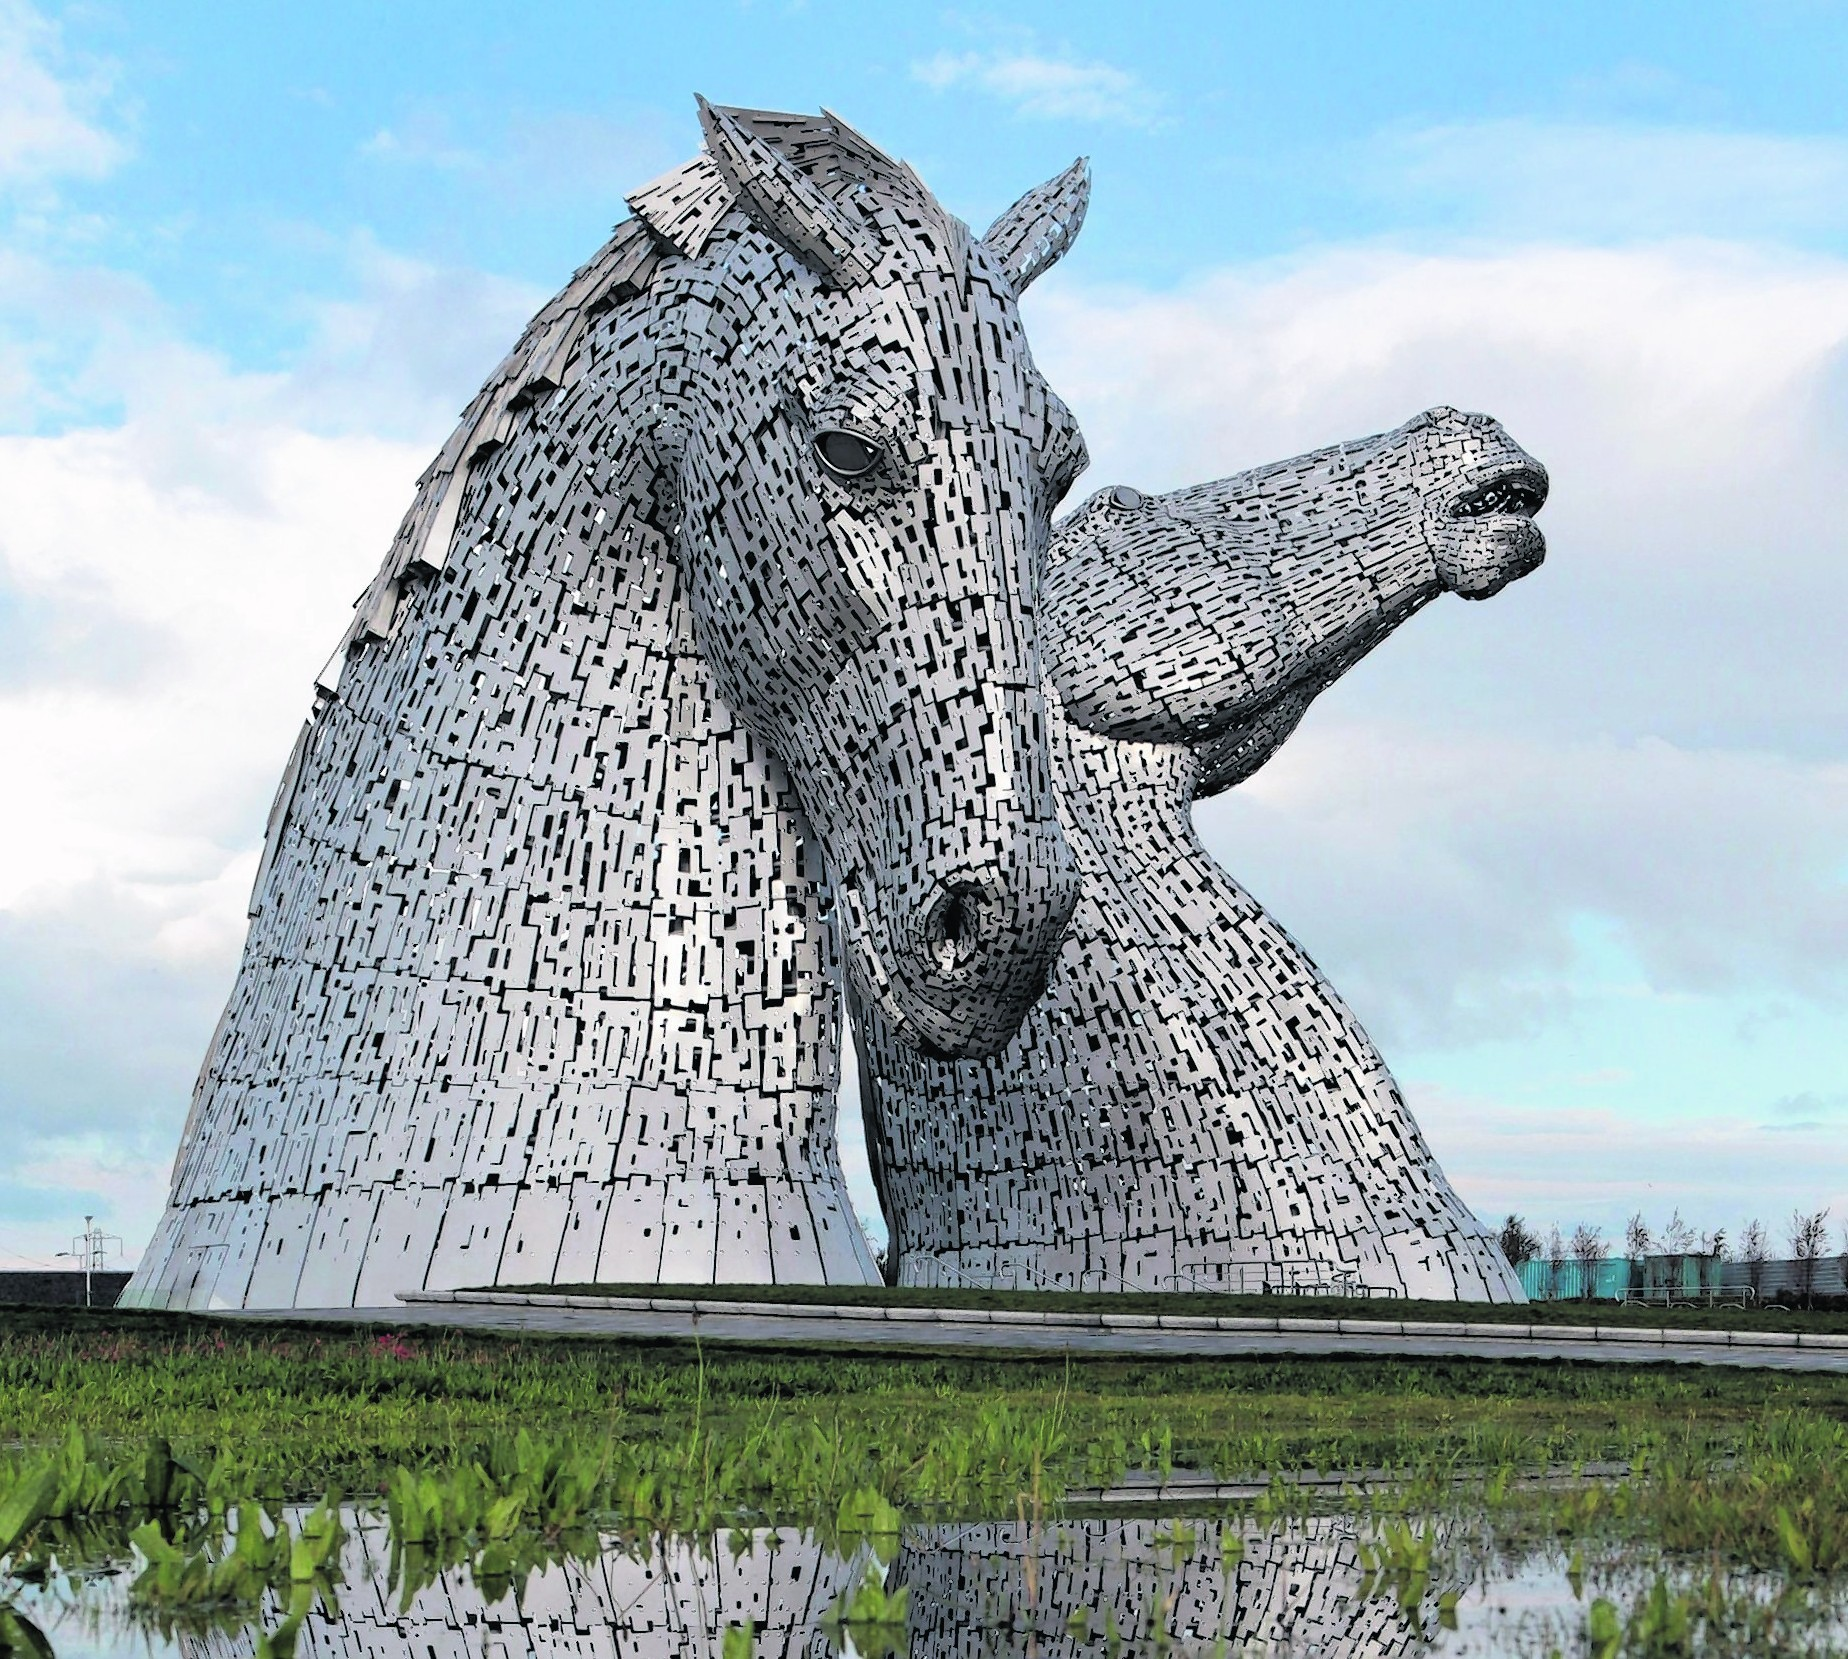 The Kelpies in Helix Park, Falkirk have helped boost visitor numbers to the area